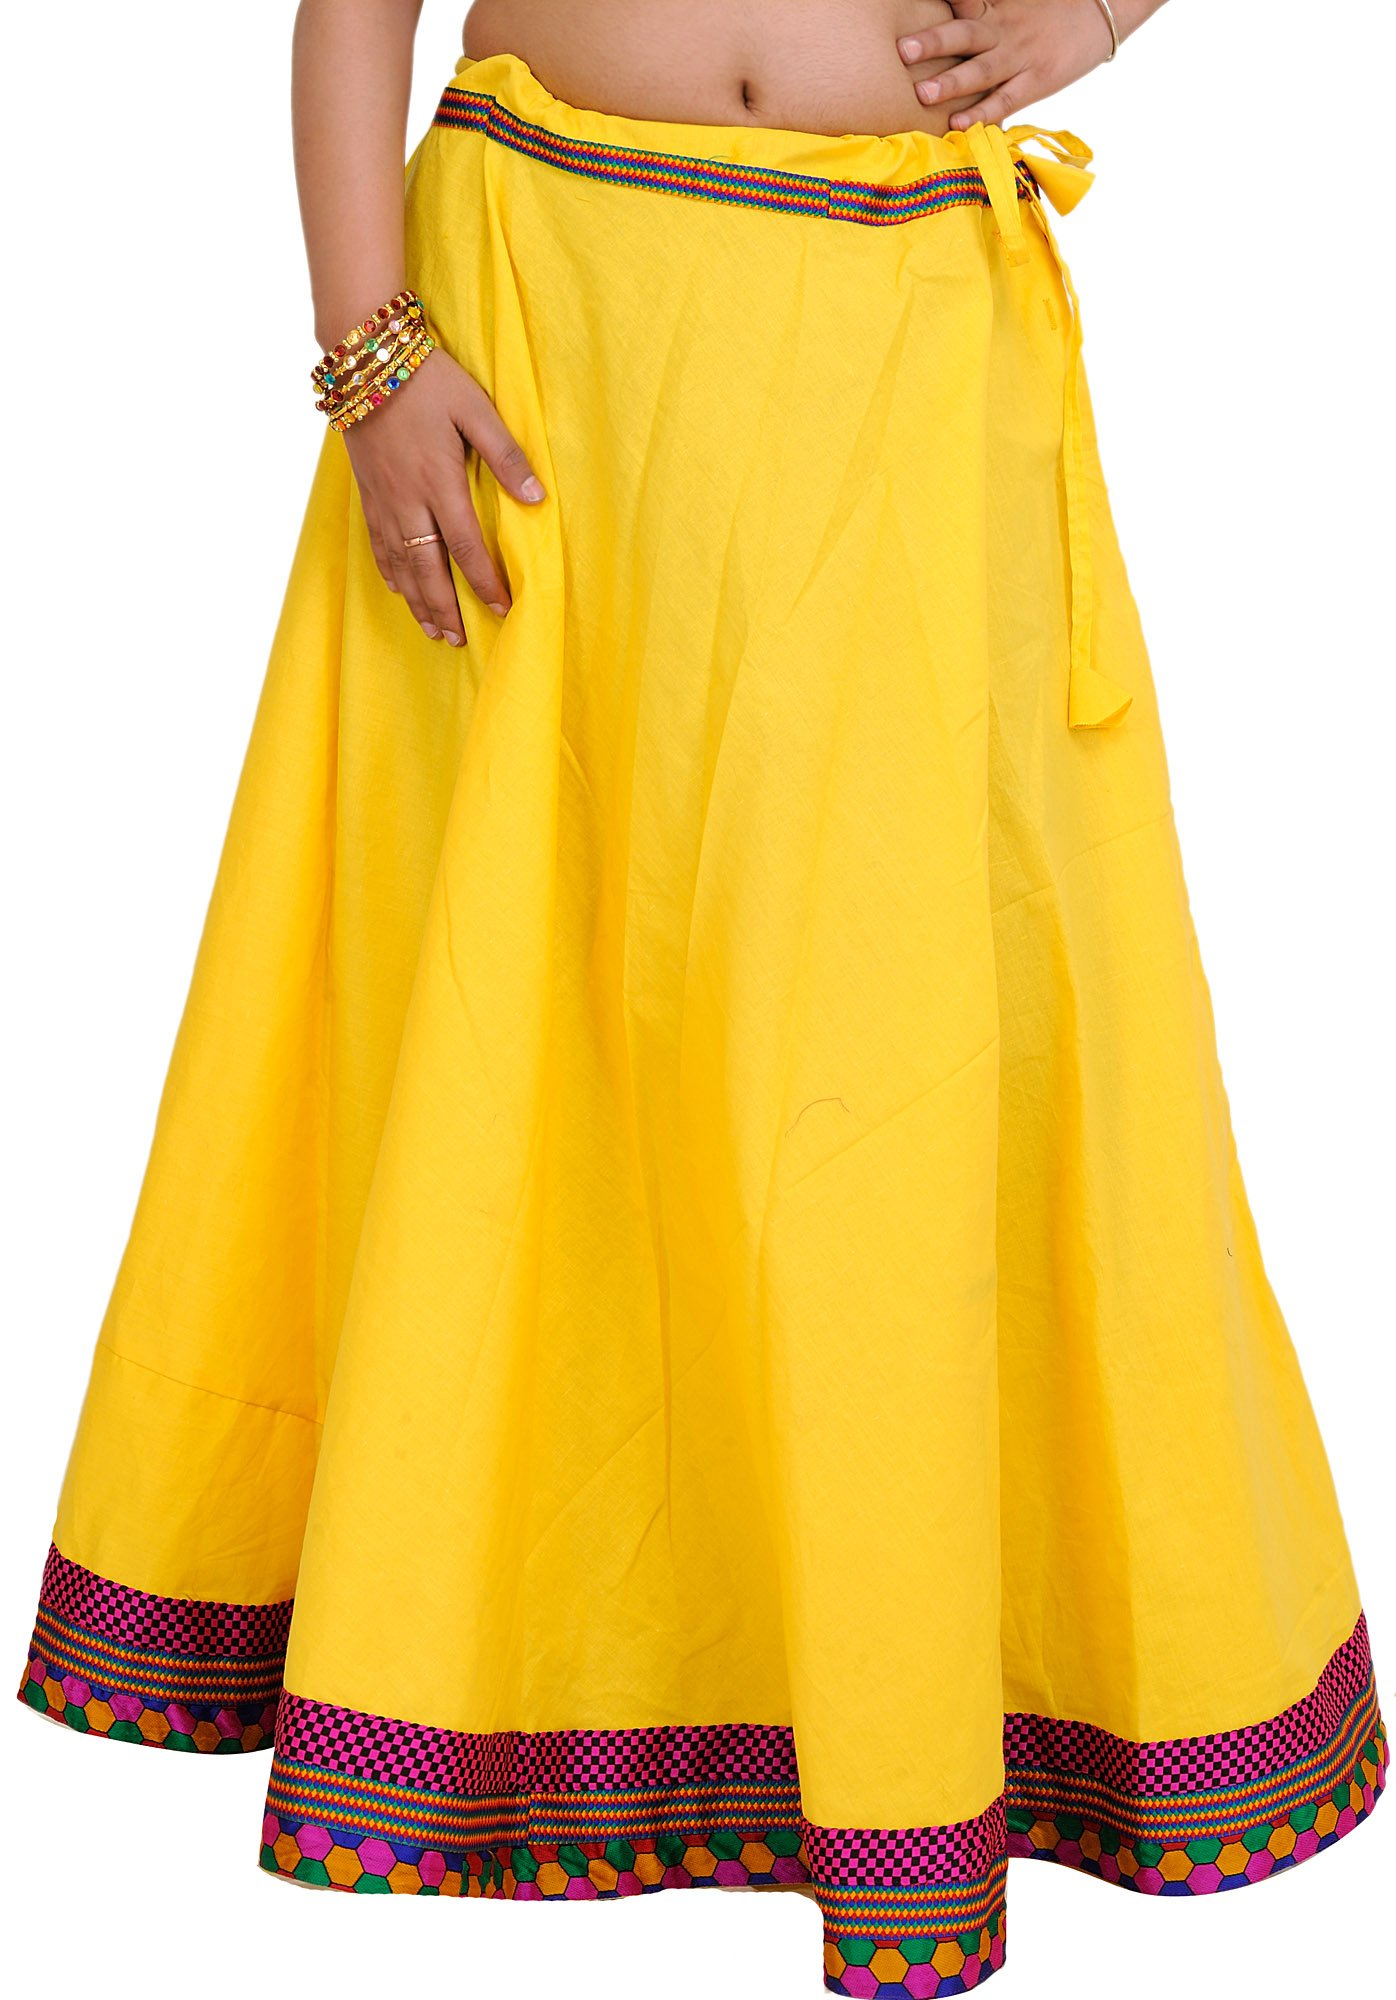 Daffodil Plain Long Ghagra Drawstring Skirt with Patch Border